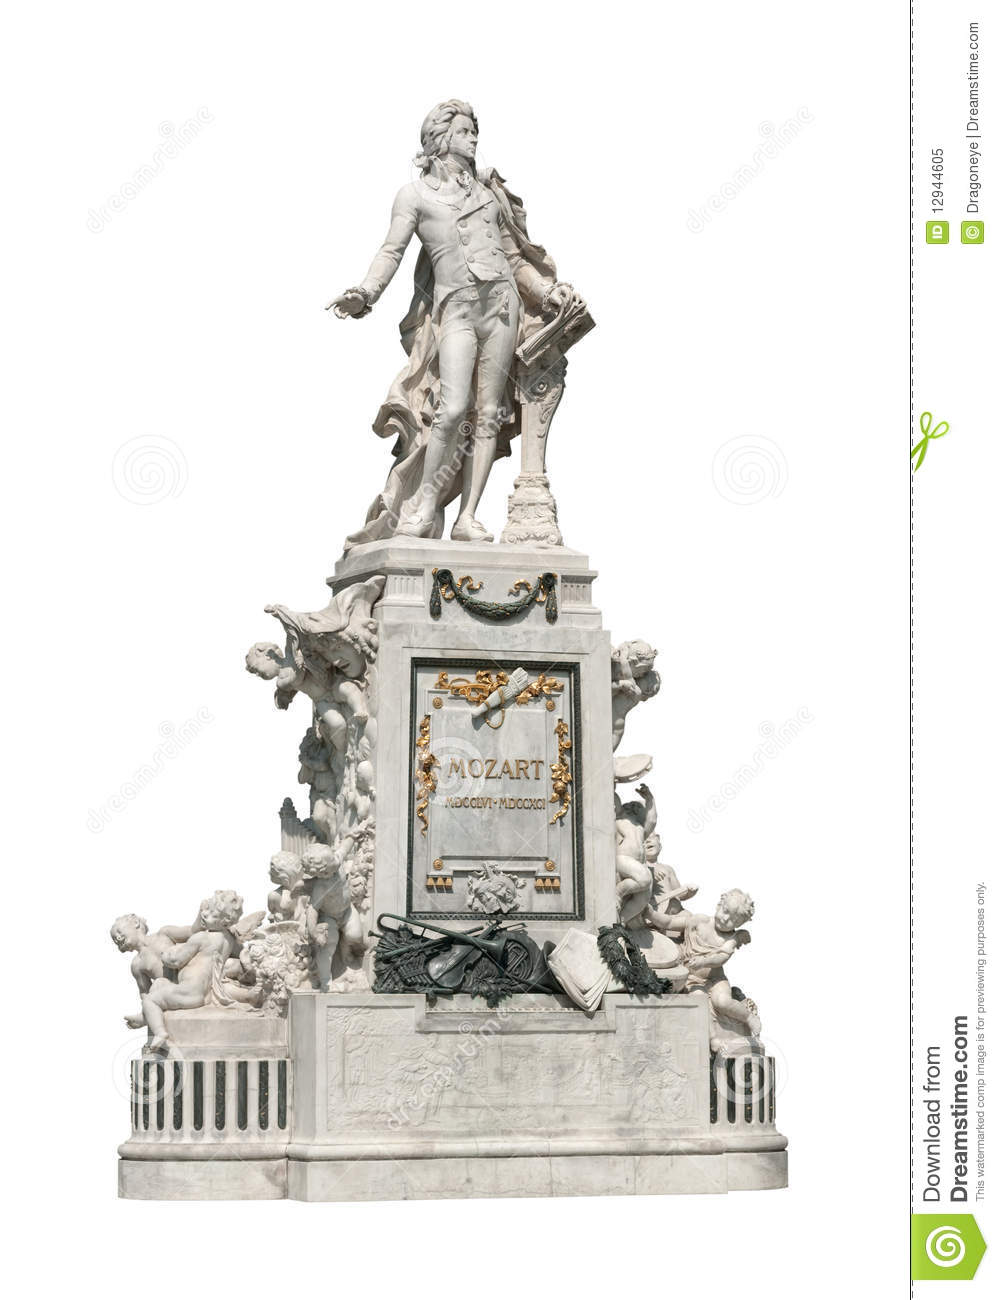 Mozart Statue In Vienna Royalty Free Stock Photo - Image: 12944605